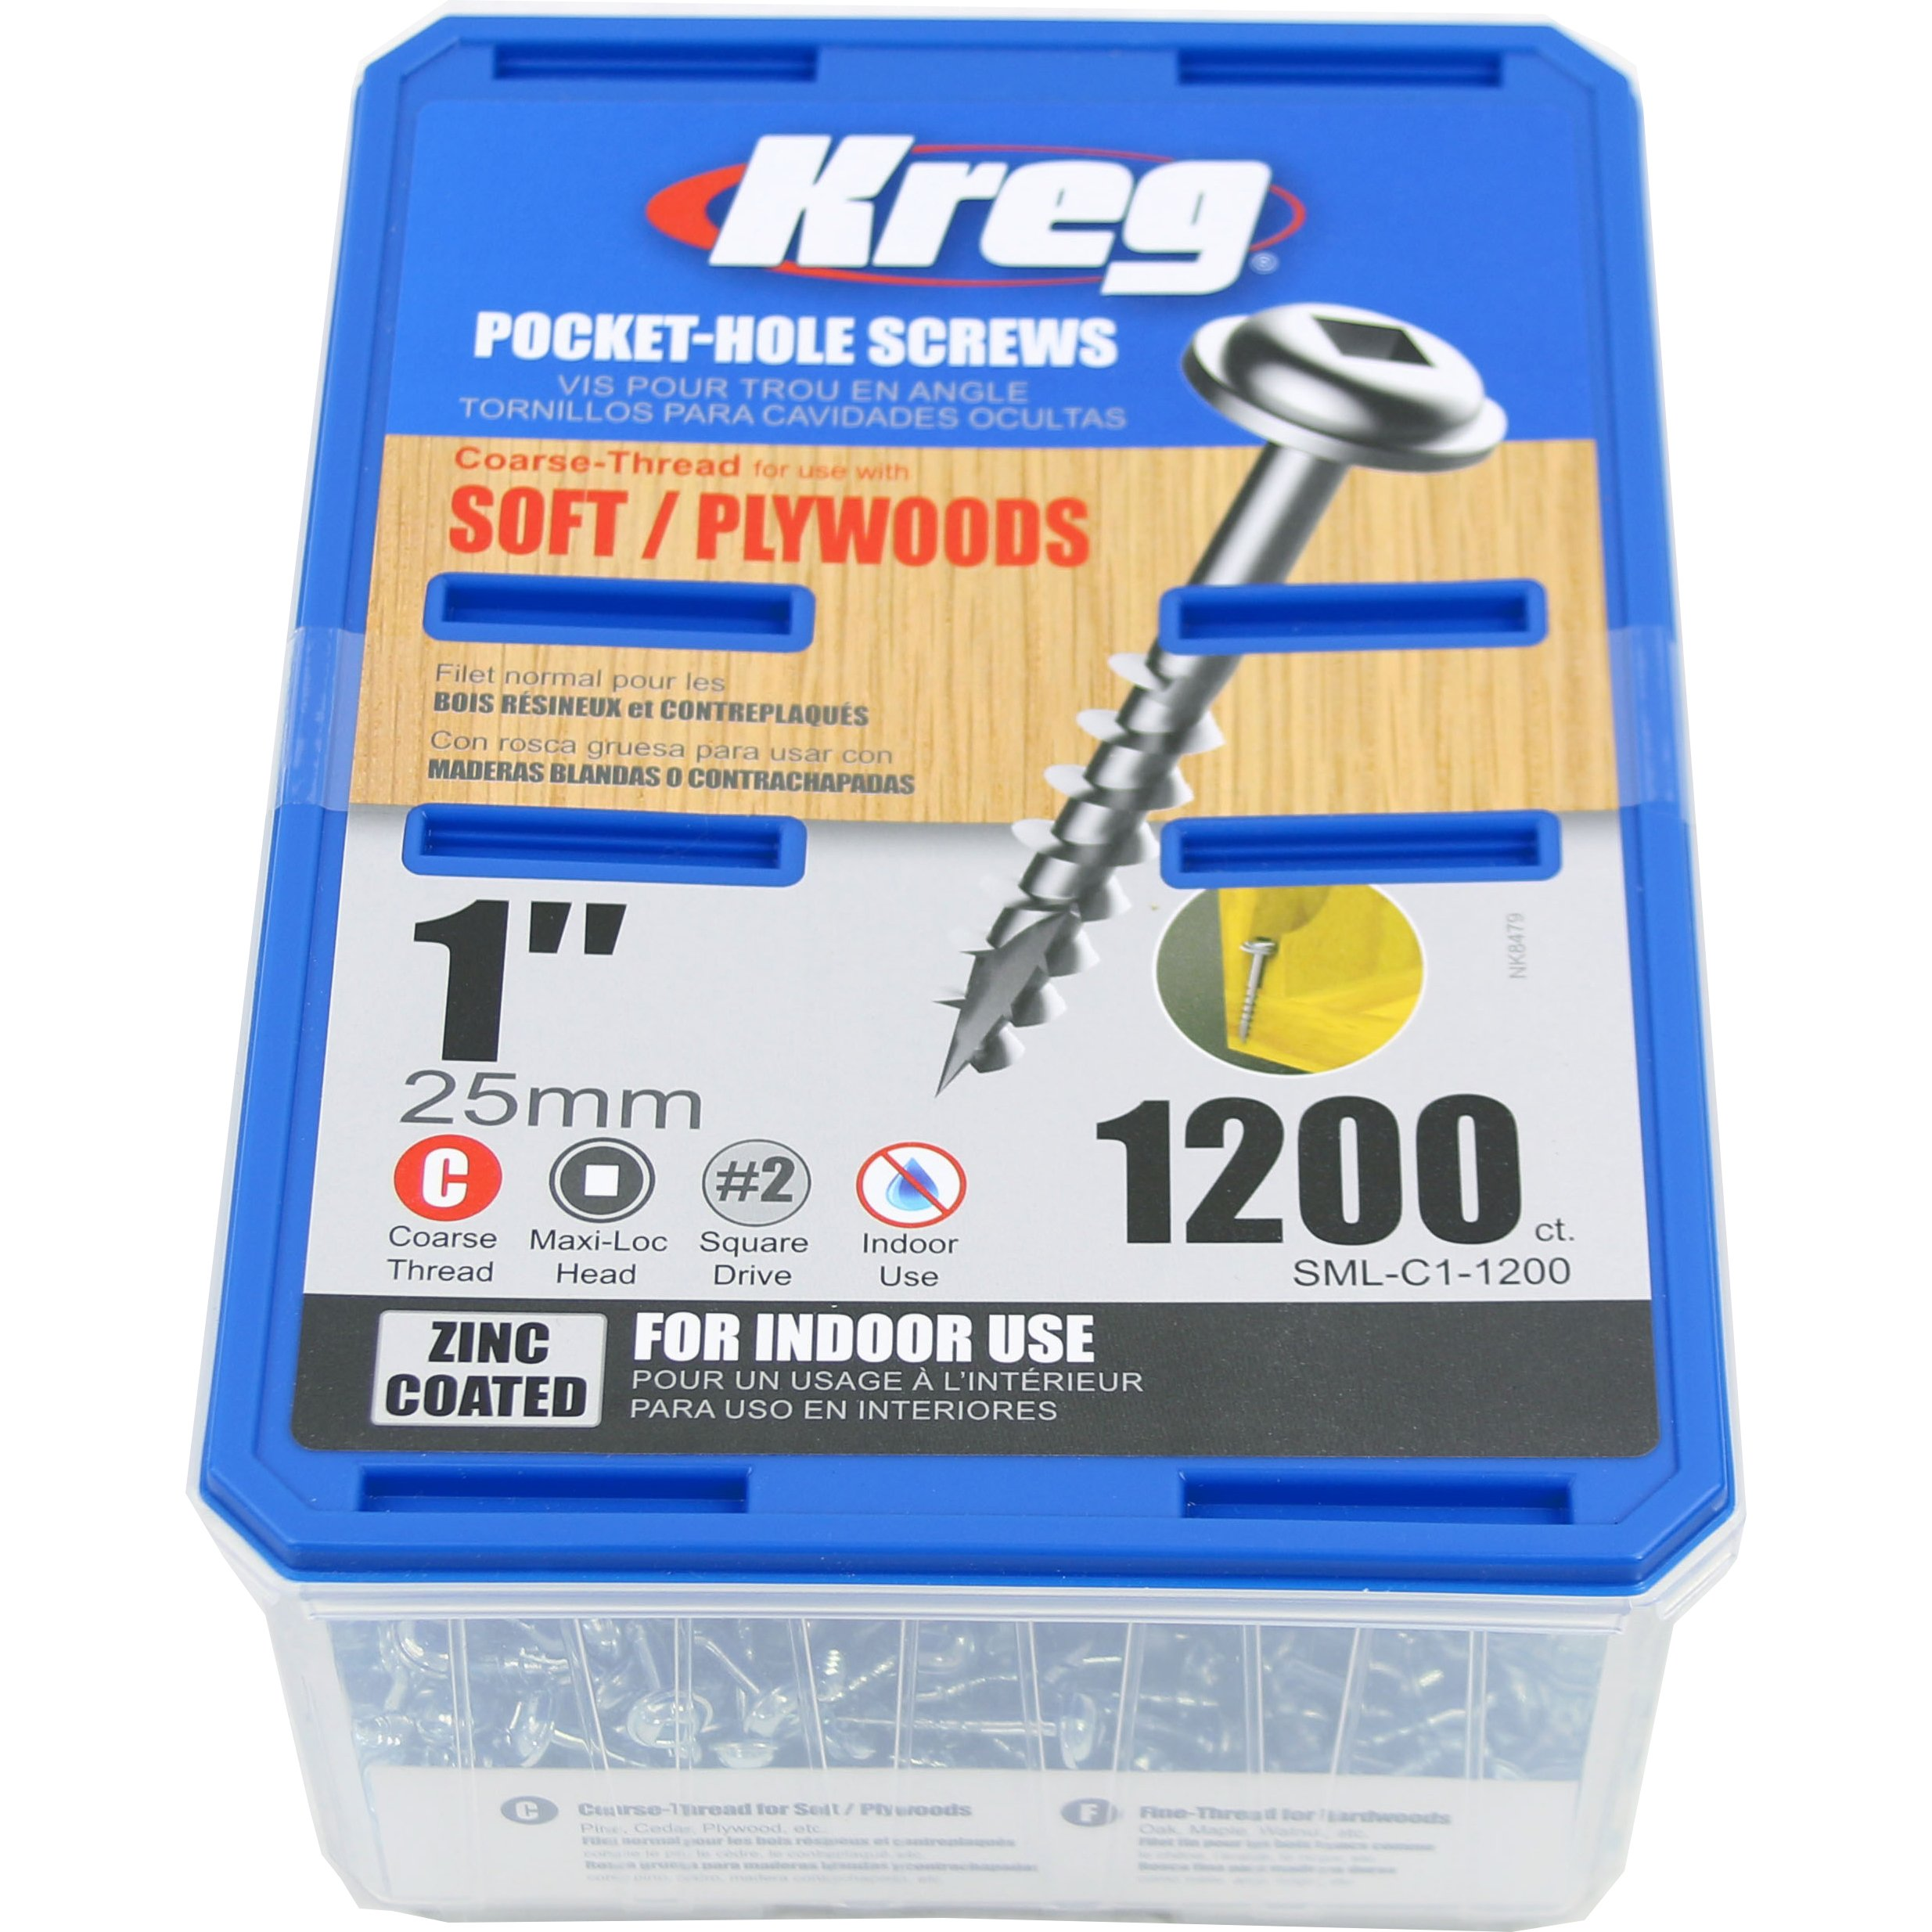 Kreg SML-C1-1200 1'' Washer Head Coarse Thread Number 8 Zinc Coated Pocket Hole Screws (1200 Count) by Kreg